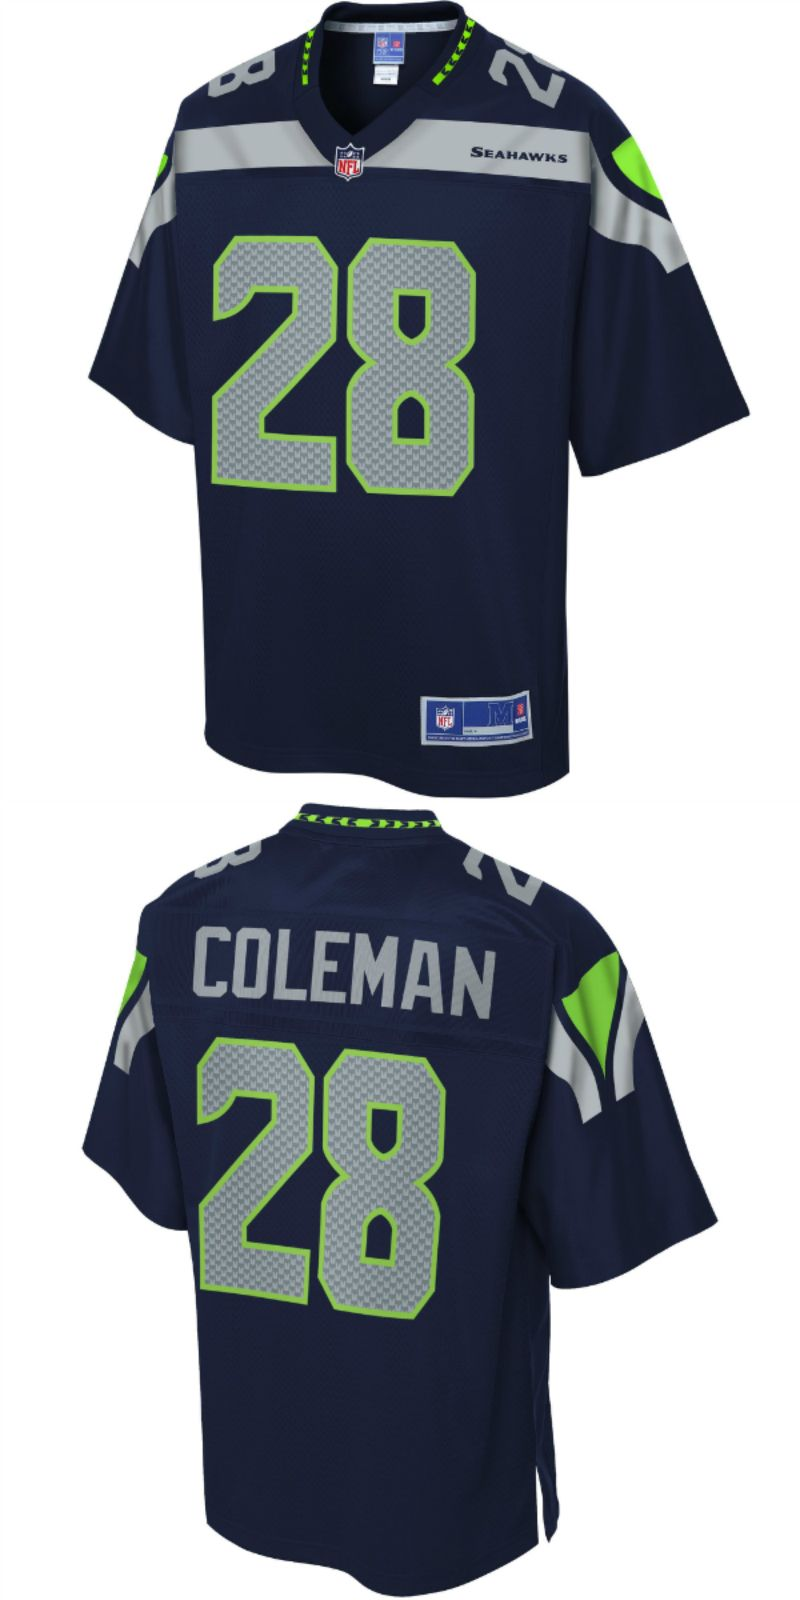 buy popular df7cf 4ca43 UP TO 70% OFF. Justin Coleman Seattle Seahawks NFL Pro Line ...